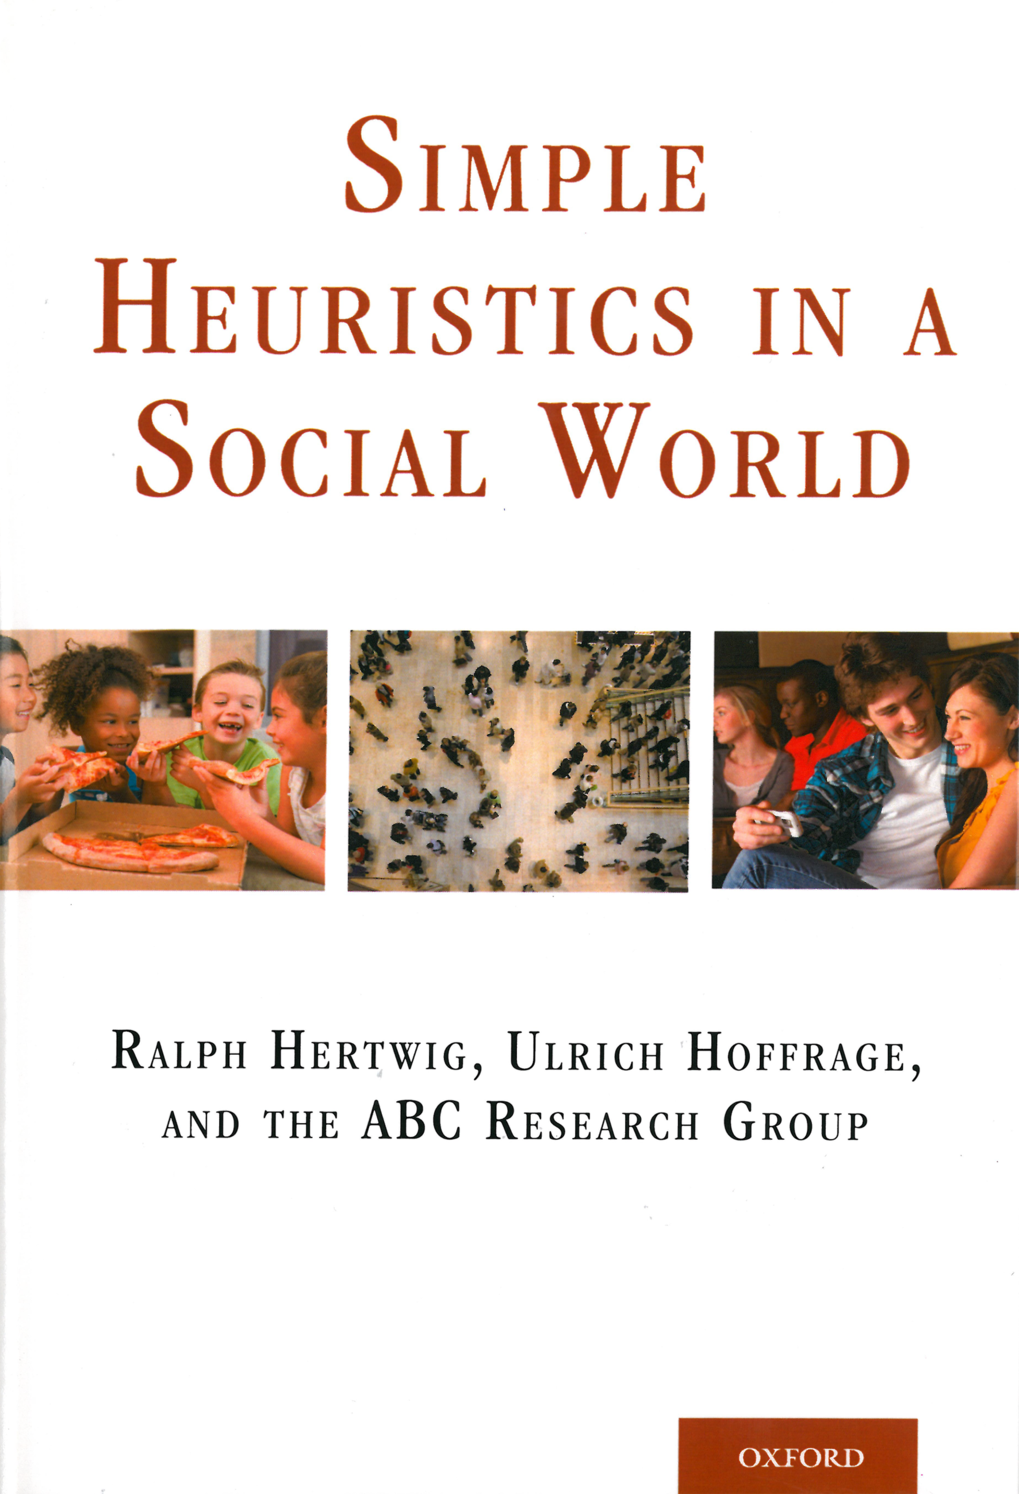 <strong>Simple heuristics in a social world</strong><span><br /></span>